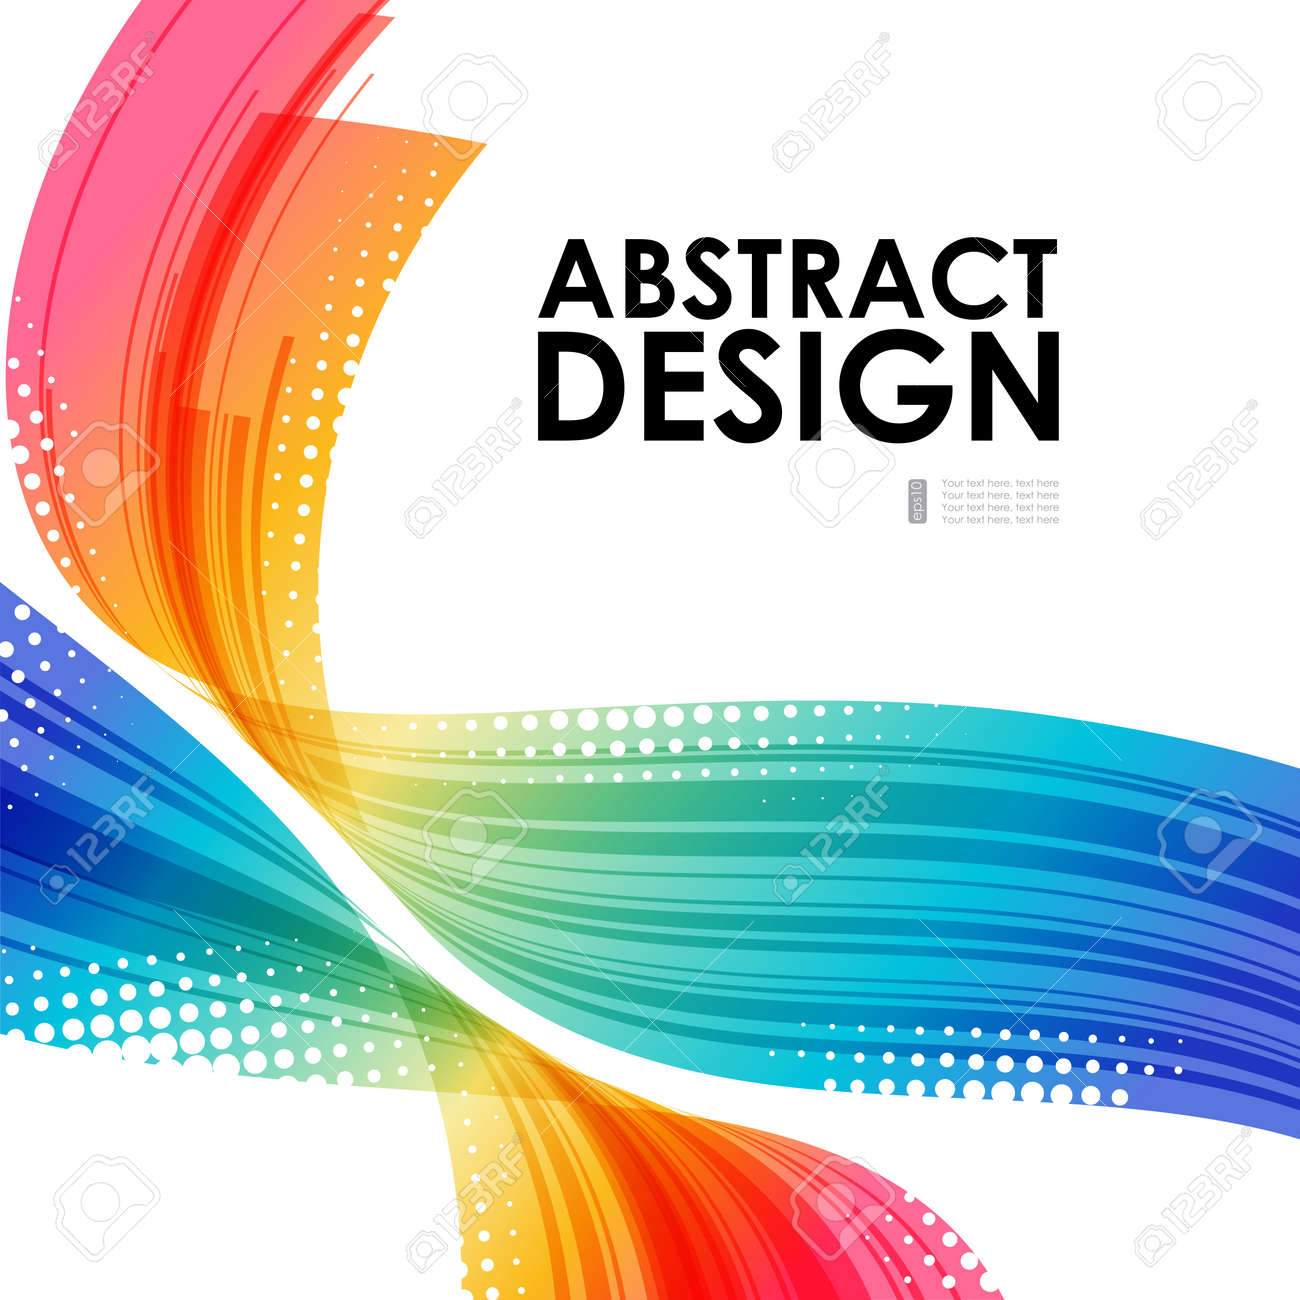 Abstract technology background, business template - 59123098